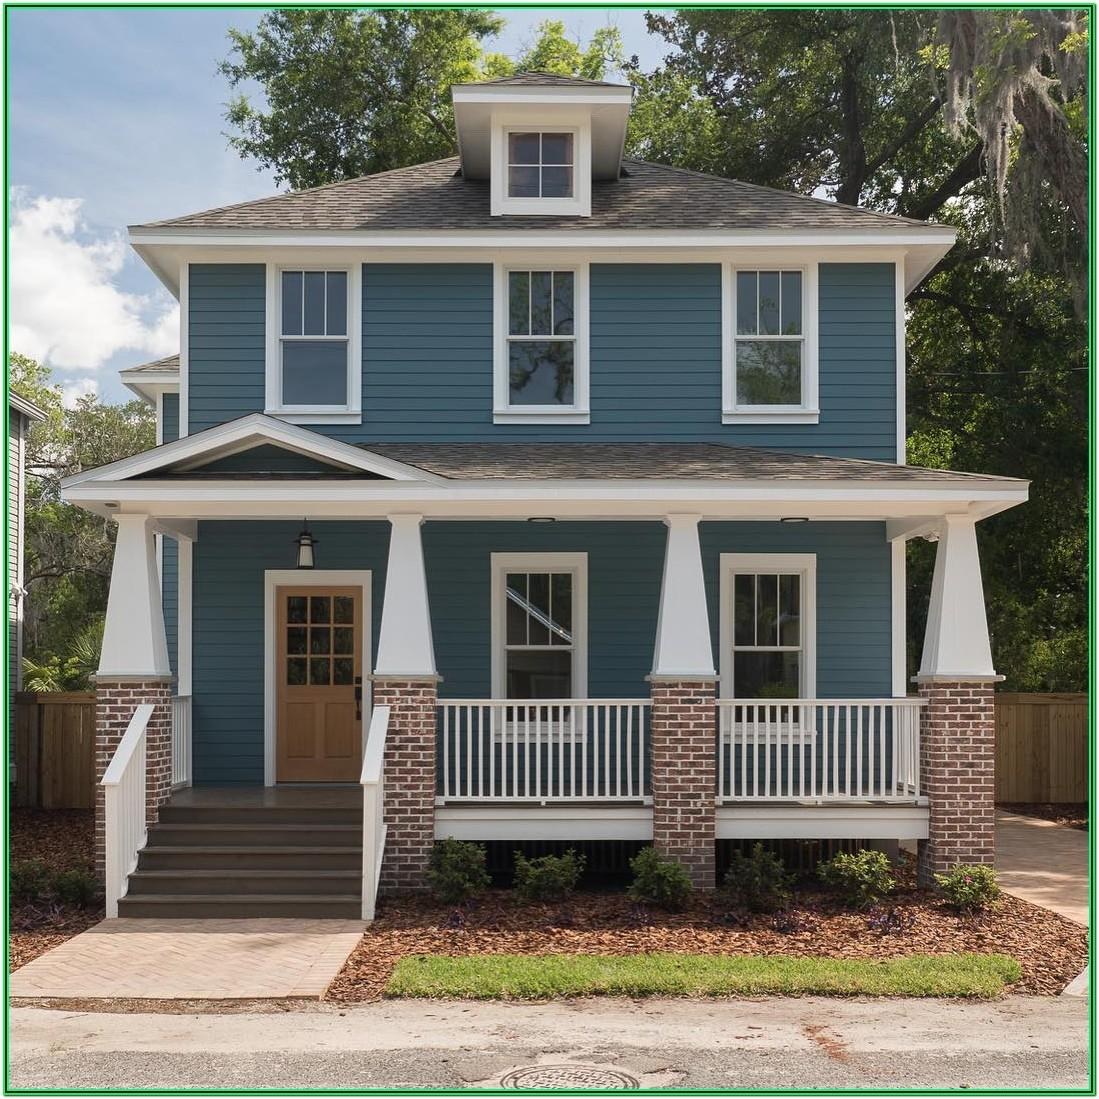 Benjamin Moore Exterior Paint Colors Blue